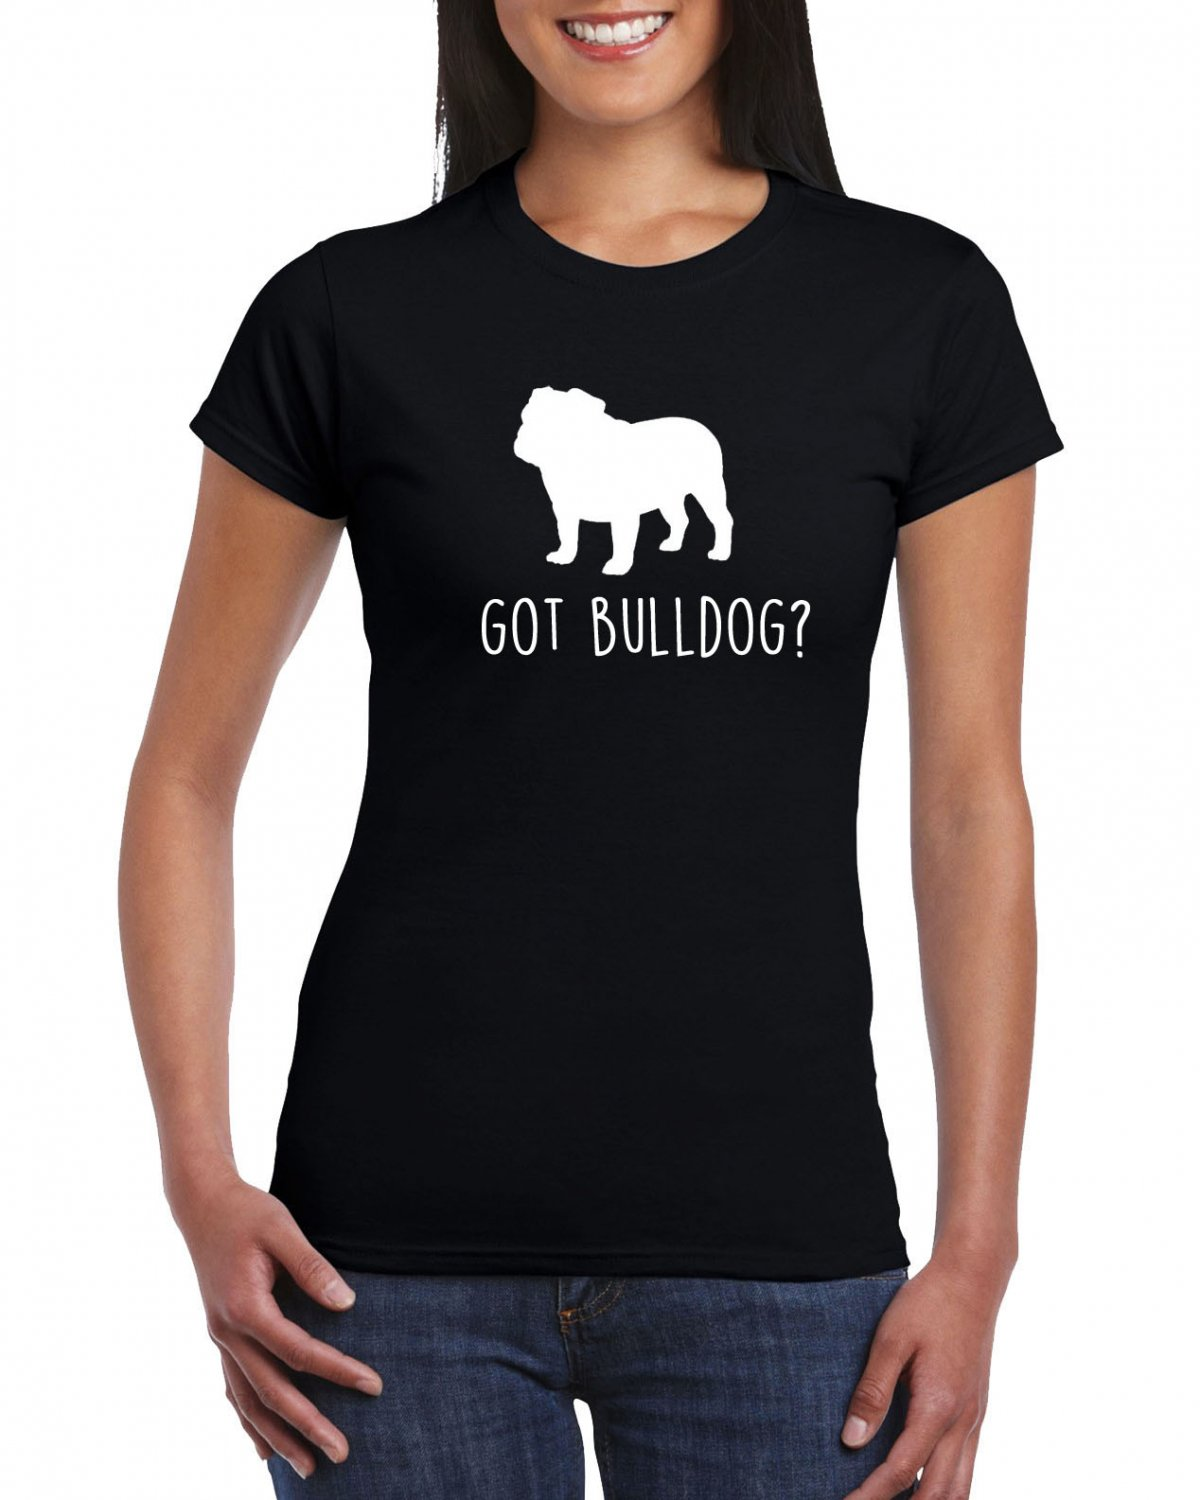 Got Bulldog? T-shirt Dog Lovers Funny Cool Ladies Top Tee